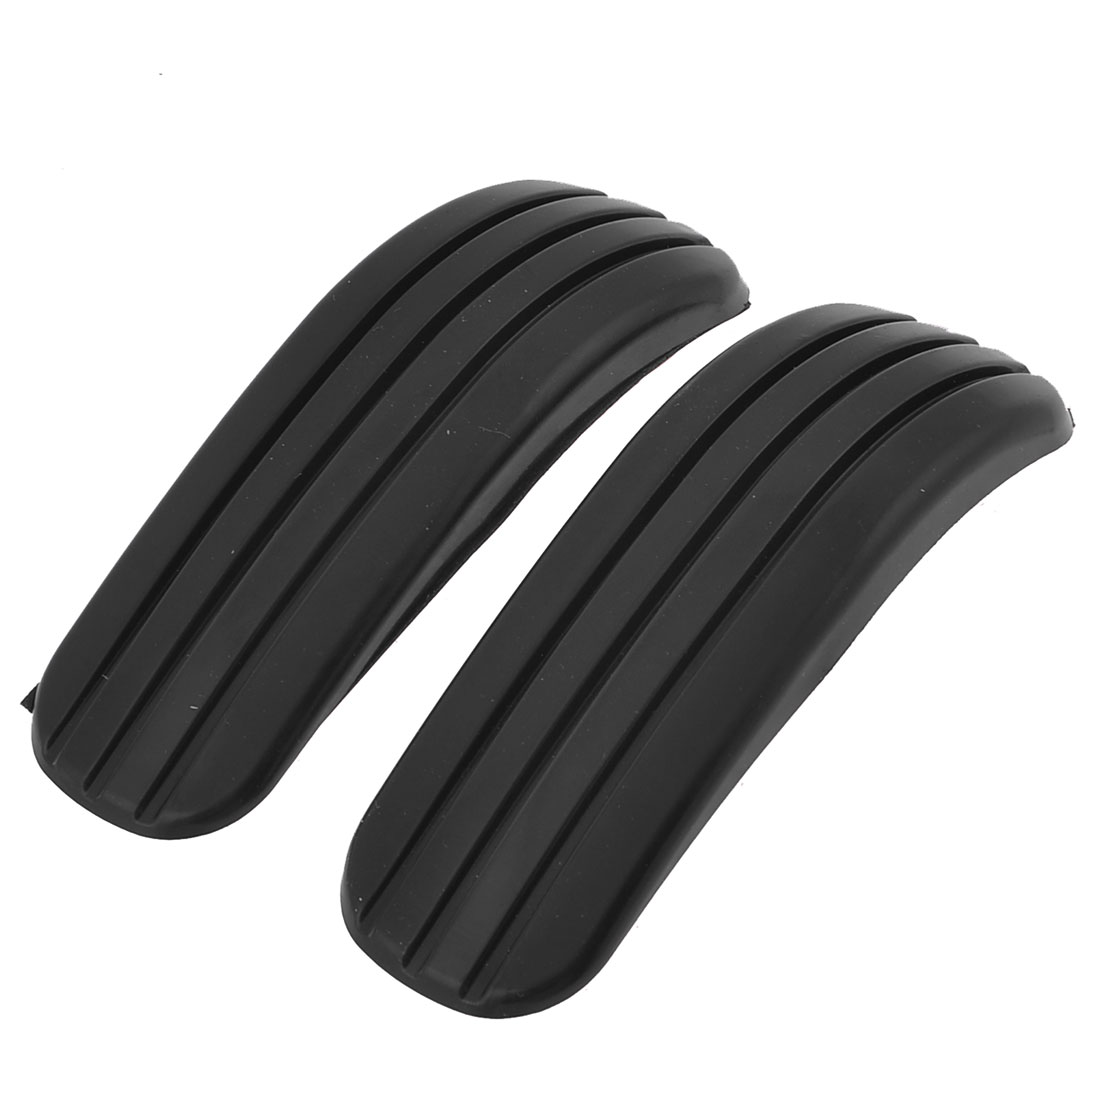 Pair Black Rubber Door Bumper Guard Sticker Black for Car